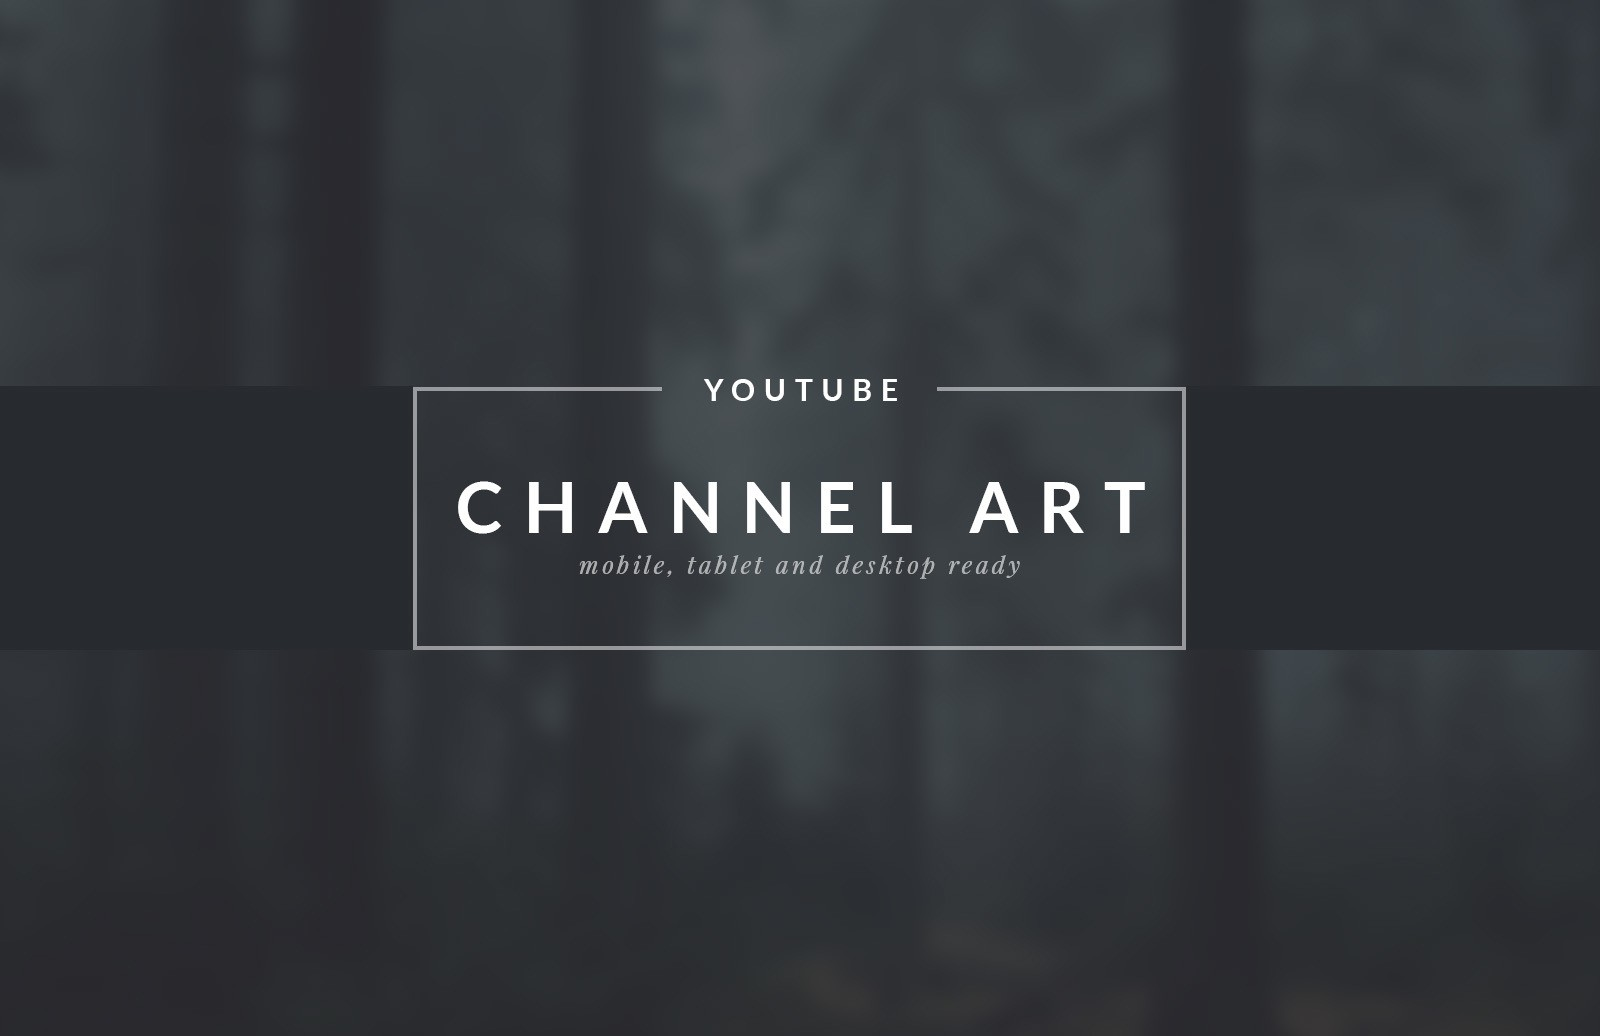 YouTube Channel Art Templates — Medialoot